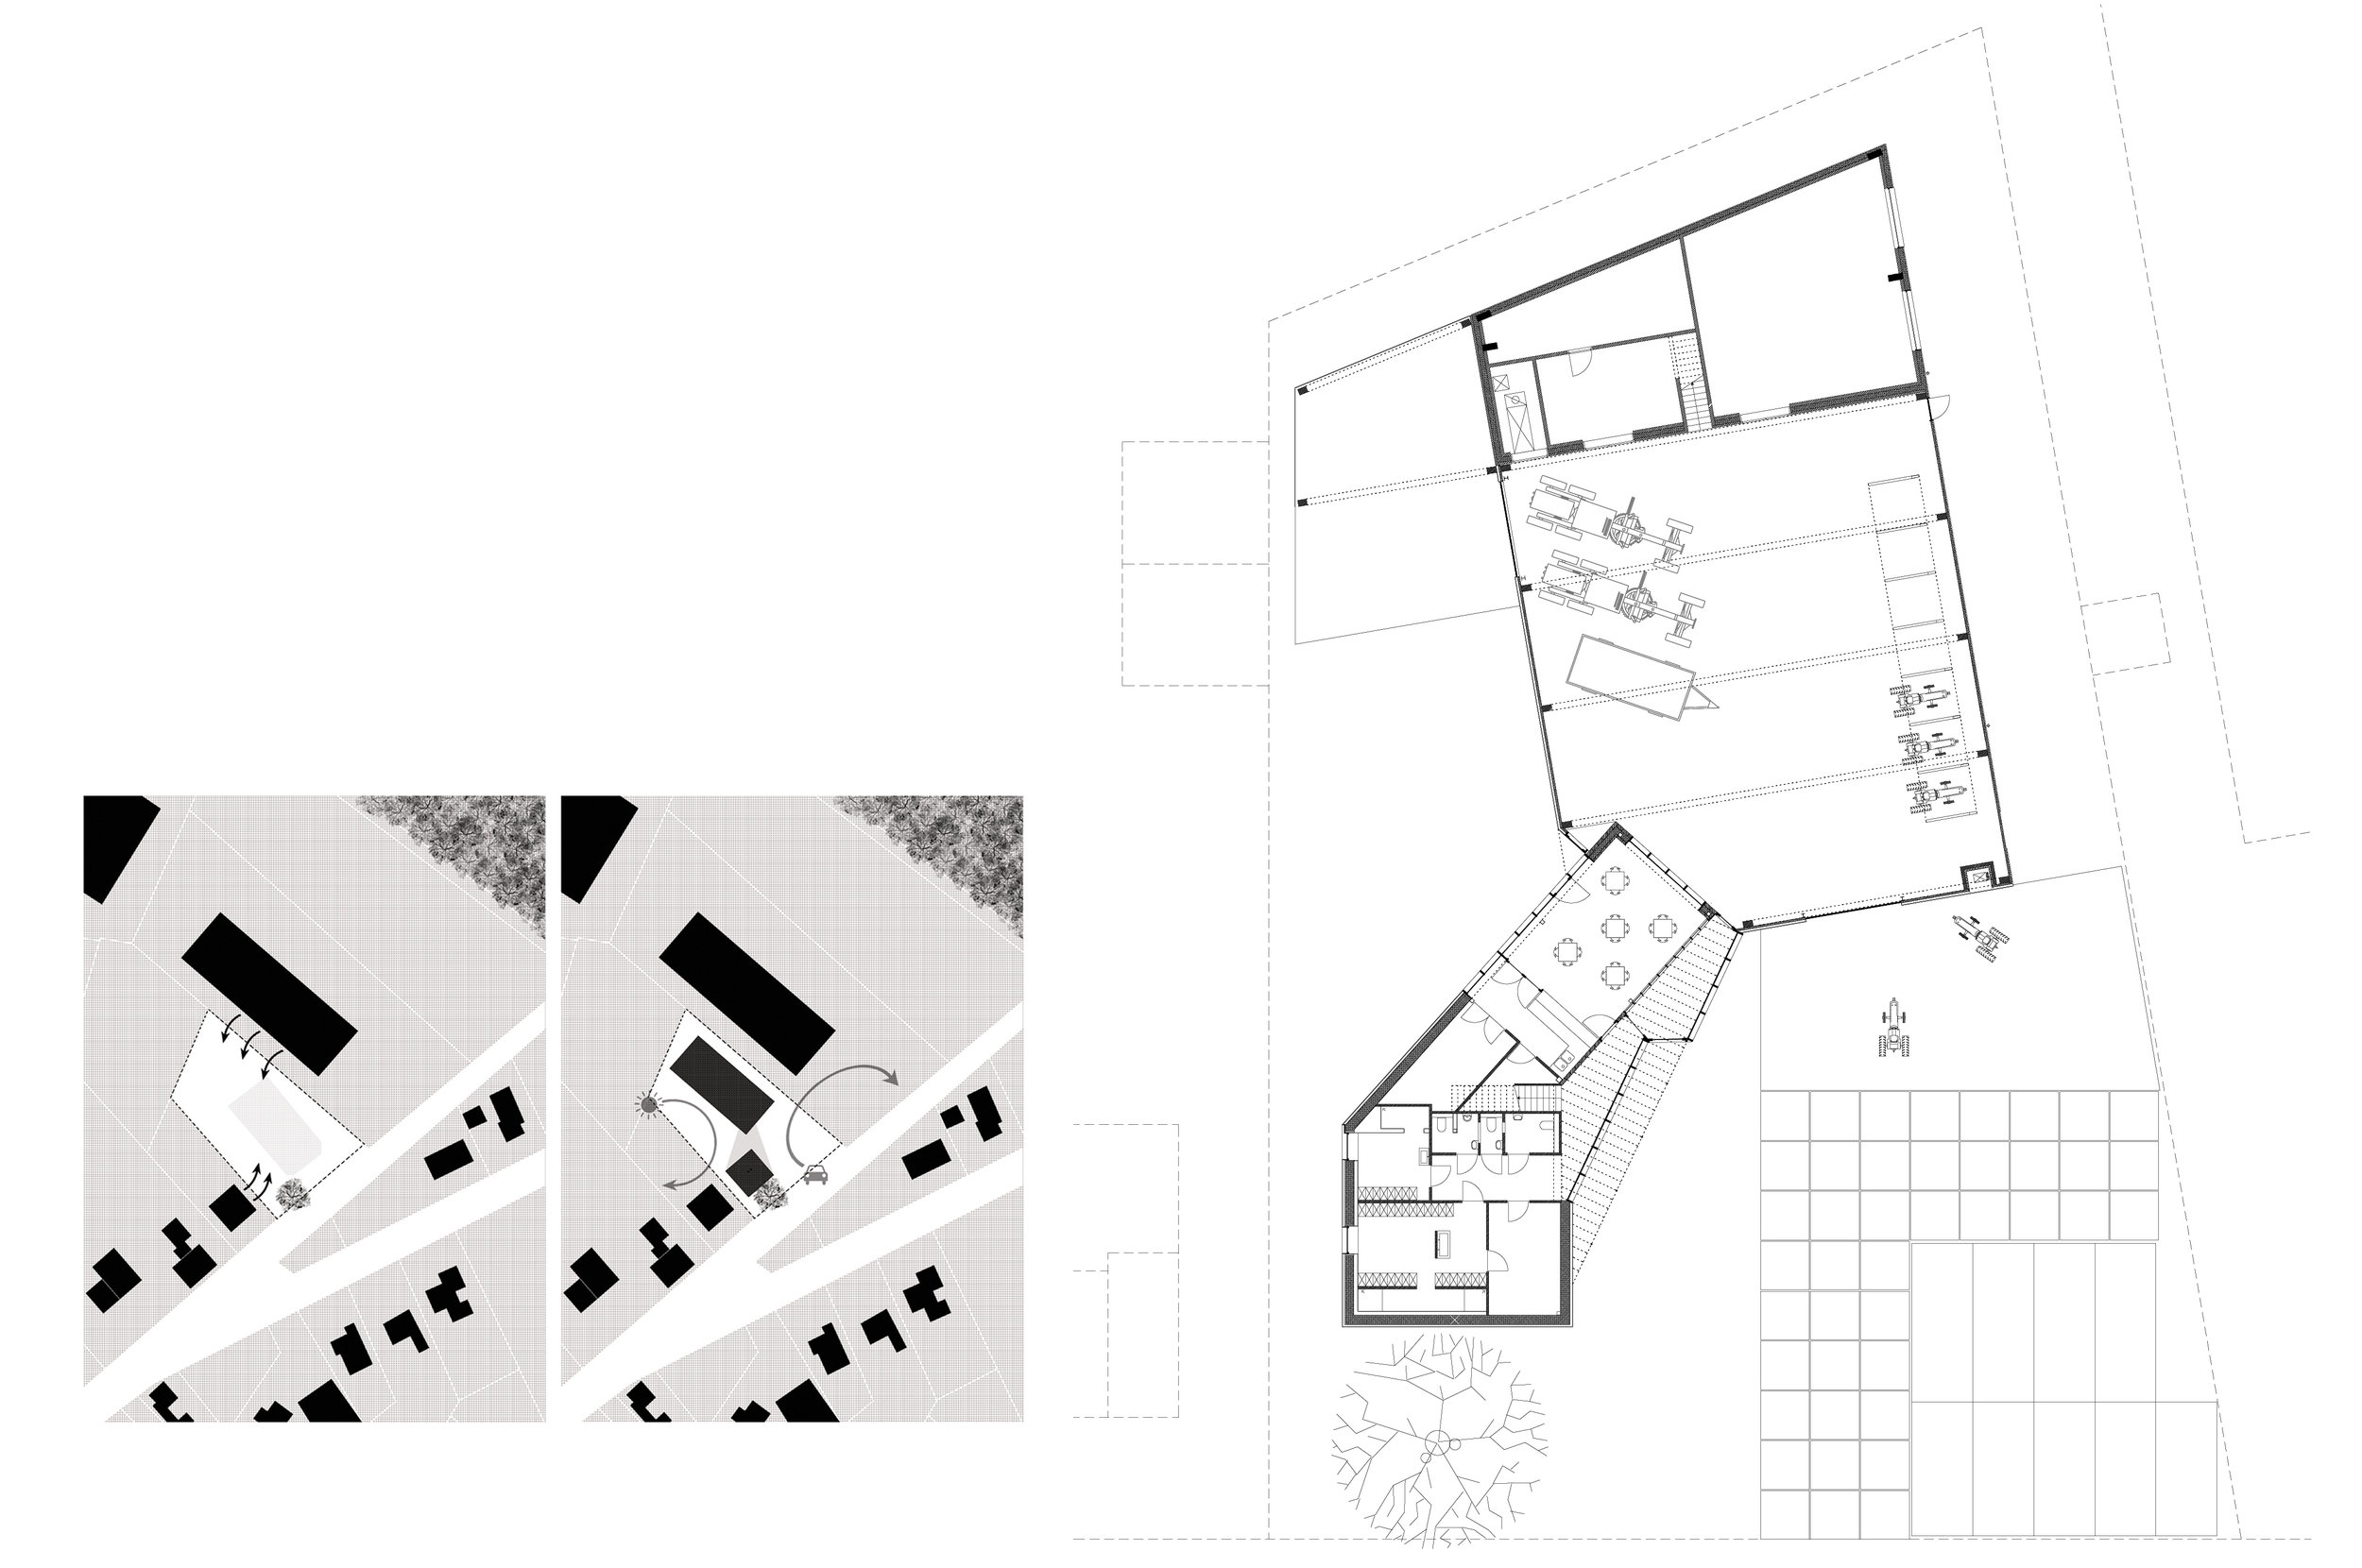 """Offices and shed for the Agency for nature and forests of the Flemish Government. The office is close to energy neutral, the added warmth is gained from wood-leftovers from the forest  photos Michiel De Cleene (2017, Hechtel-Eksel)           96              Normal   0           false   false   false     EN-GB   X-NONE   X-NONE                                                                                                                                                                                                                                                                                                                                                                                                                                                                                                                                                                                                                                                                                                                                                                                                                                                                                     /* Style Definitions */ table.MsoNormalTable {mso-style-name:""""Table Normal""""; mso-tstyle-rowband-size:0; mso-tstyle-colband-size:0; mso-style-noshow:yes; mso-style-priority:99; mso-style-parent:""""""""; mso-padding-alt:0cm 5.4pt 0cm 5.4pt; mso-para-margin:0cm; mso-para-margin-bottom:.0001pt; mso-pagination:widow-orphan; font-size:12.0pt; font-family:Calibri; mso-ascii-font-family:Calibri; mso-ascii-theme-font:minor-latin; mso-hansi-font-family:Calibri; mso-hansi-theme-font:minor-latin; mso-fareast-language:EN-US;}"""